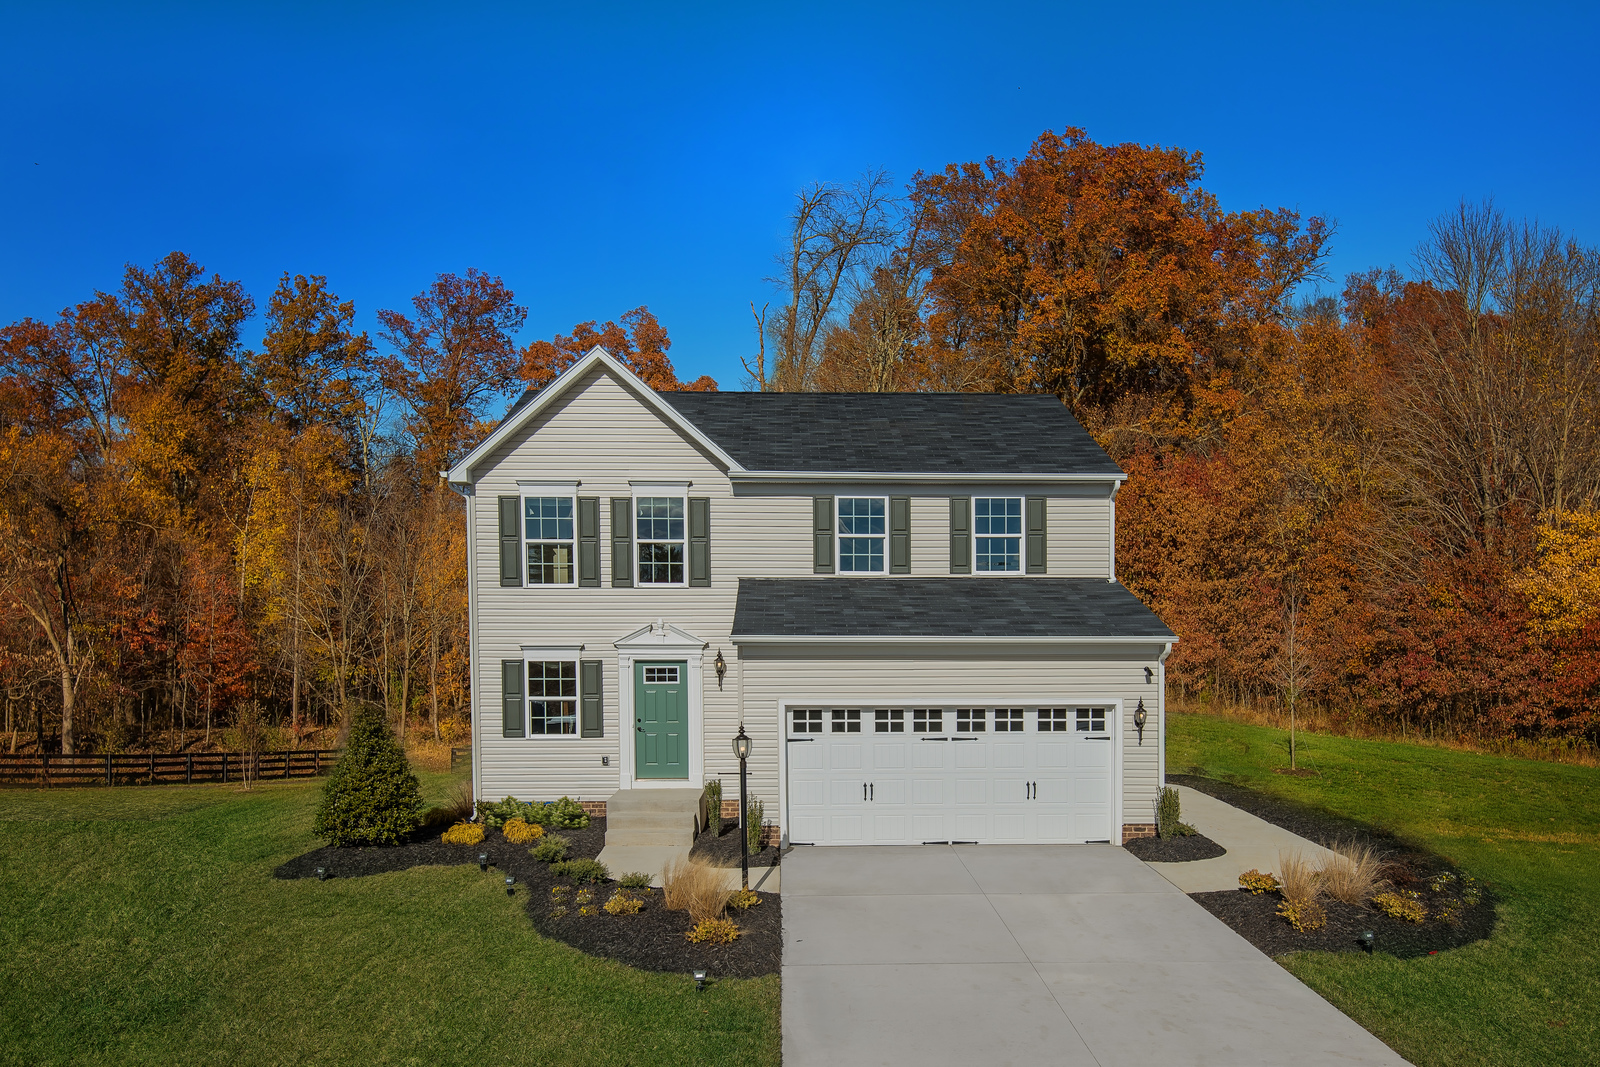 New Sienna Home Model For Sale At Millridge In North Ridgeville OH